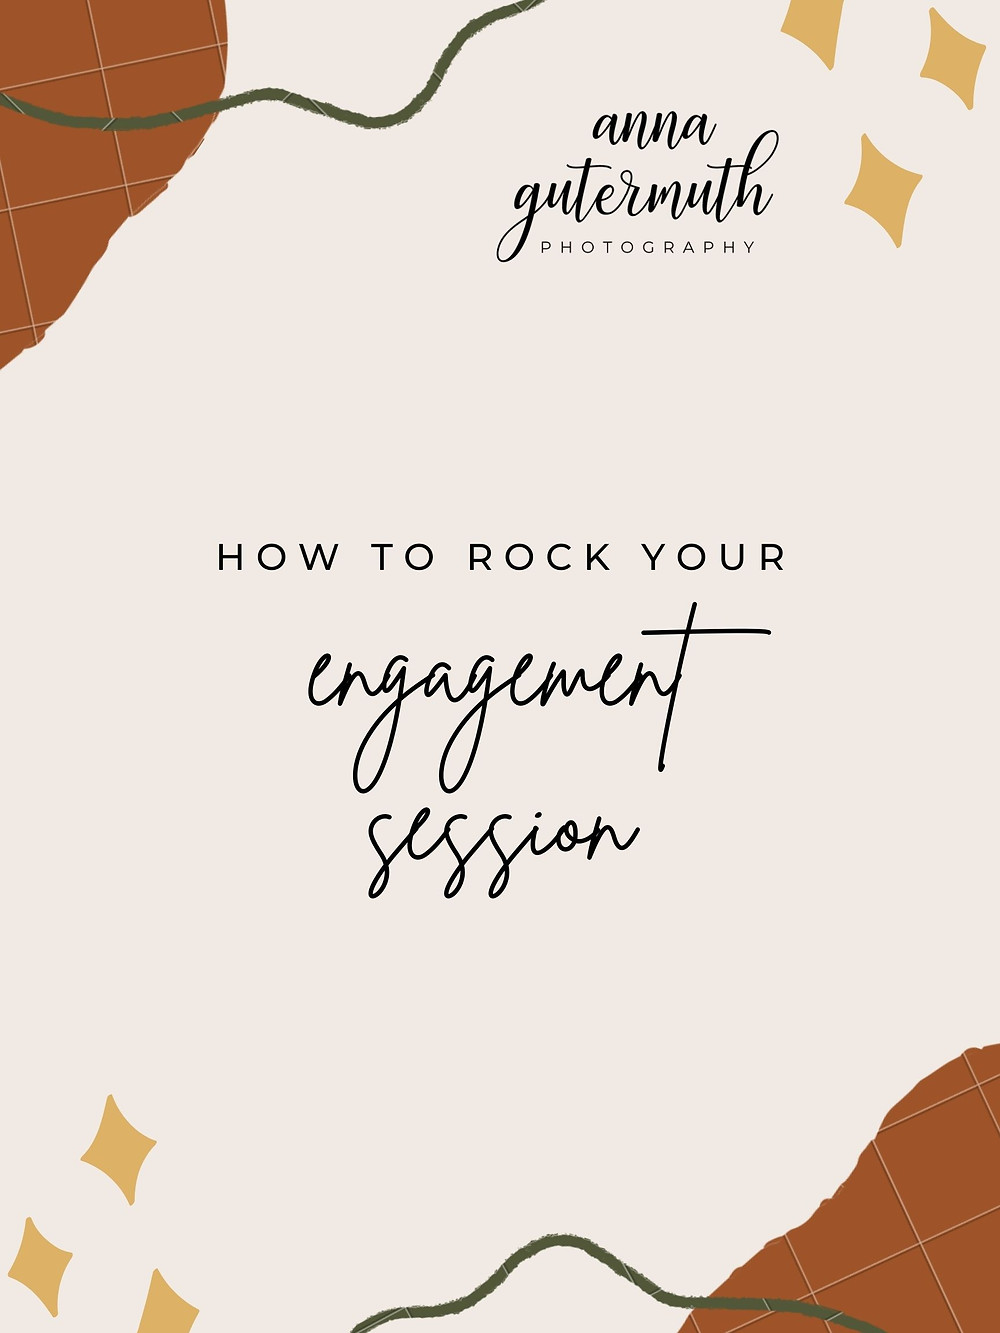 How to Rock Your Engagement Session: The Best Tips and Tricks by Anna Gutermuth Photography